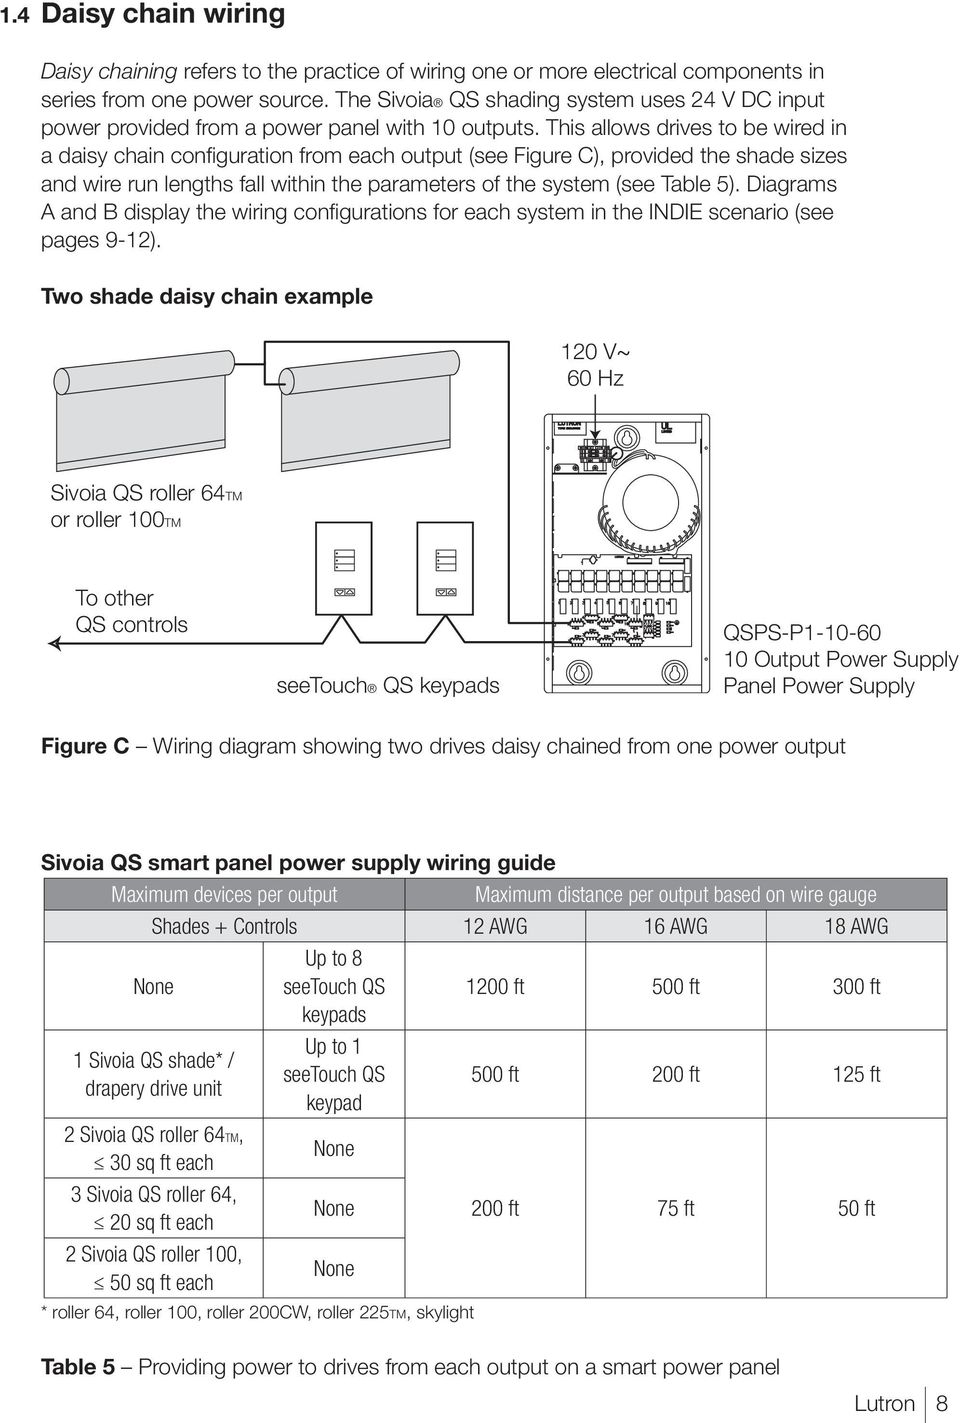 Total Installed Cost Comparison Study Of Motorized Shading Systems Daisy Chain Wiring This Allows Drives To Be Wired In A Confi Guration From Each Output